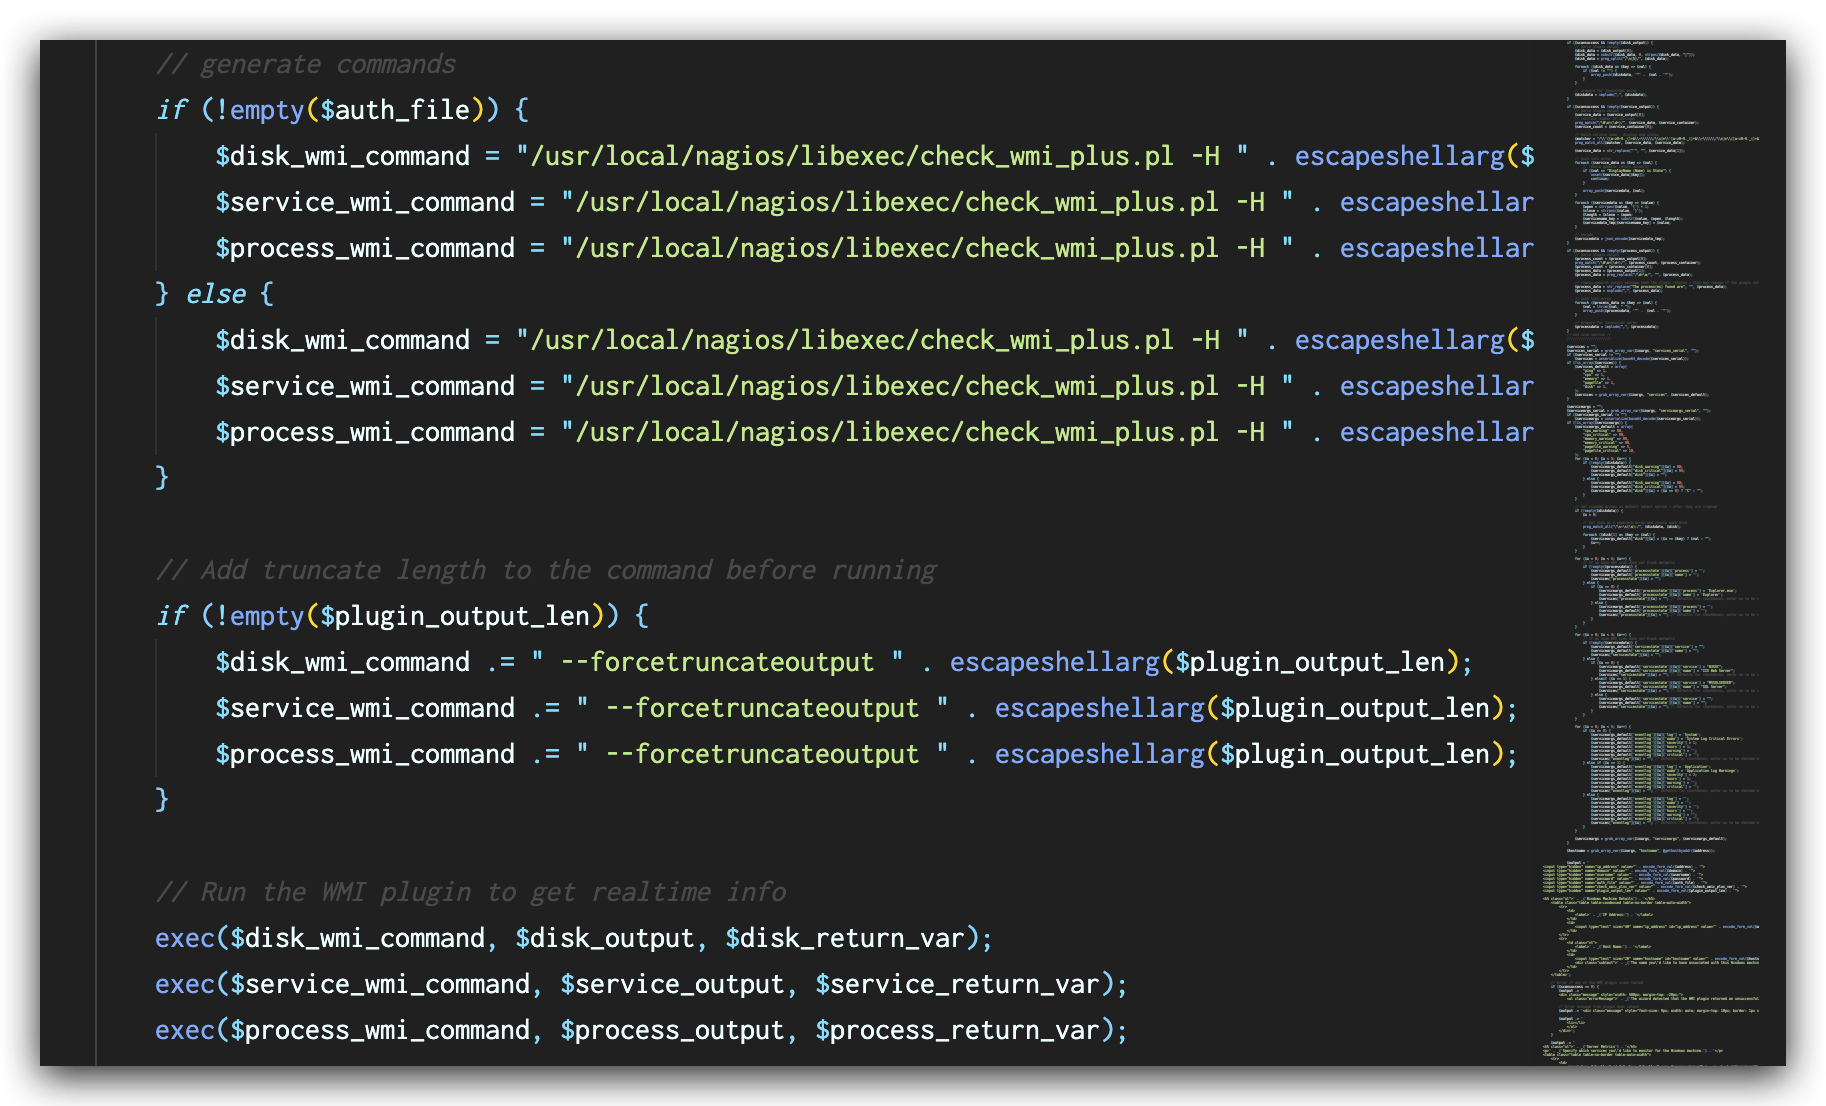 The image depicts code view of the fix, indicating that the escapeshellarg() function is present to validate user input